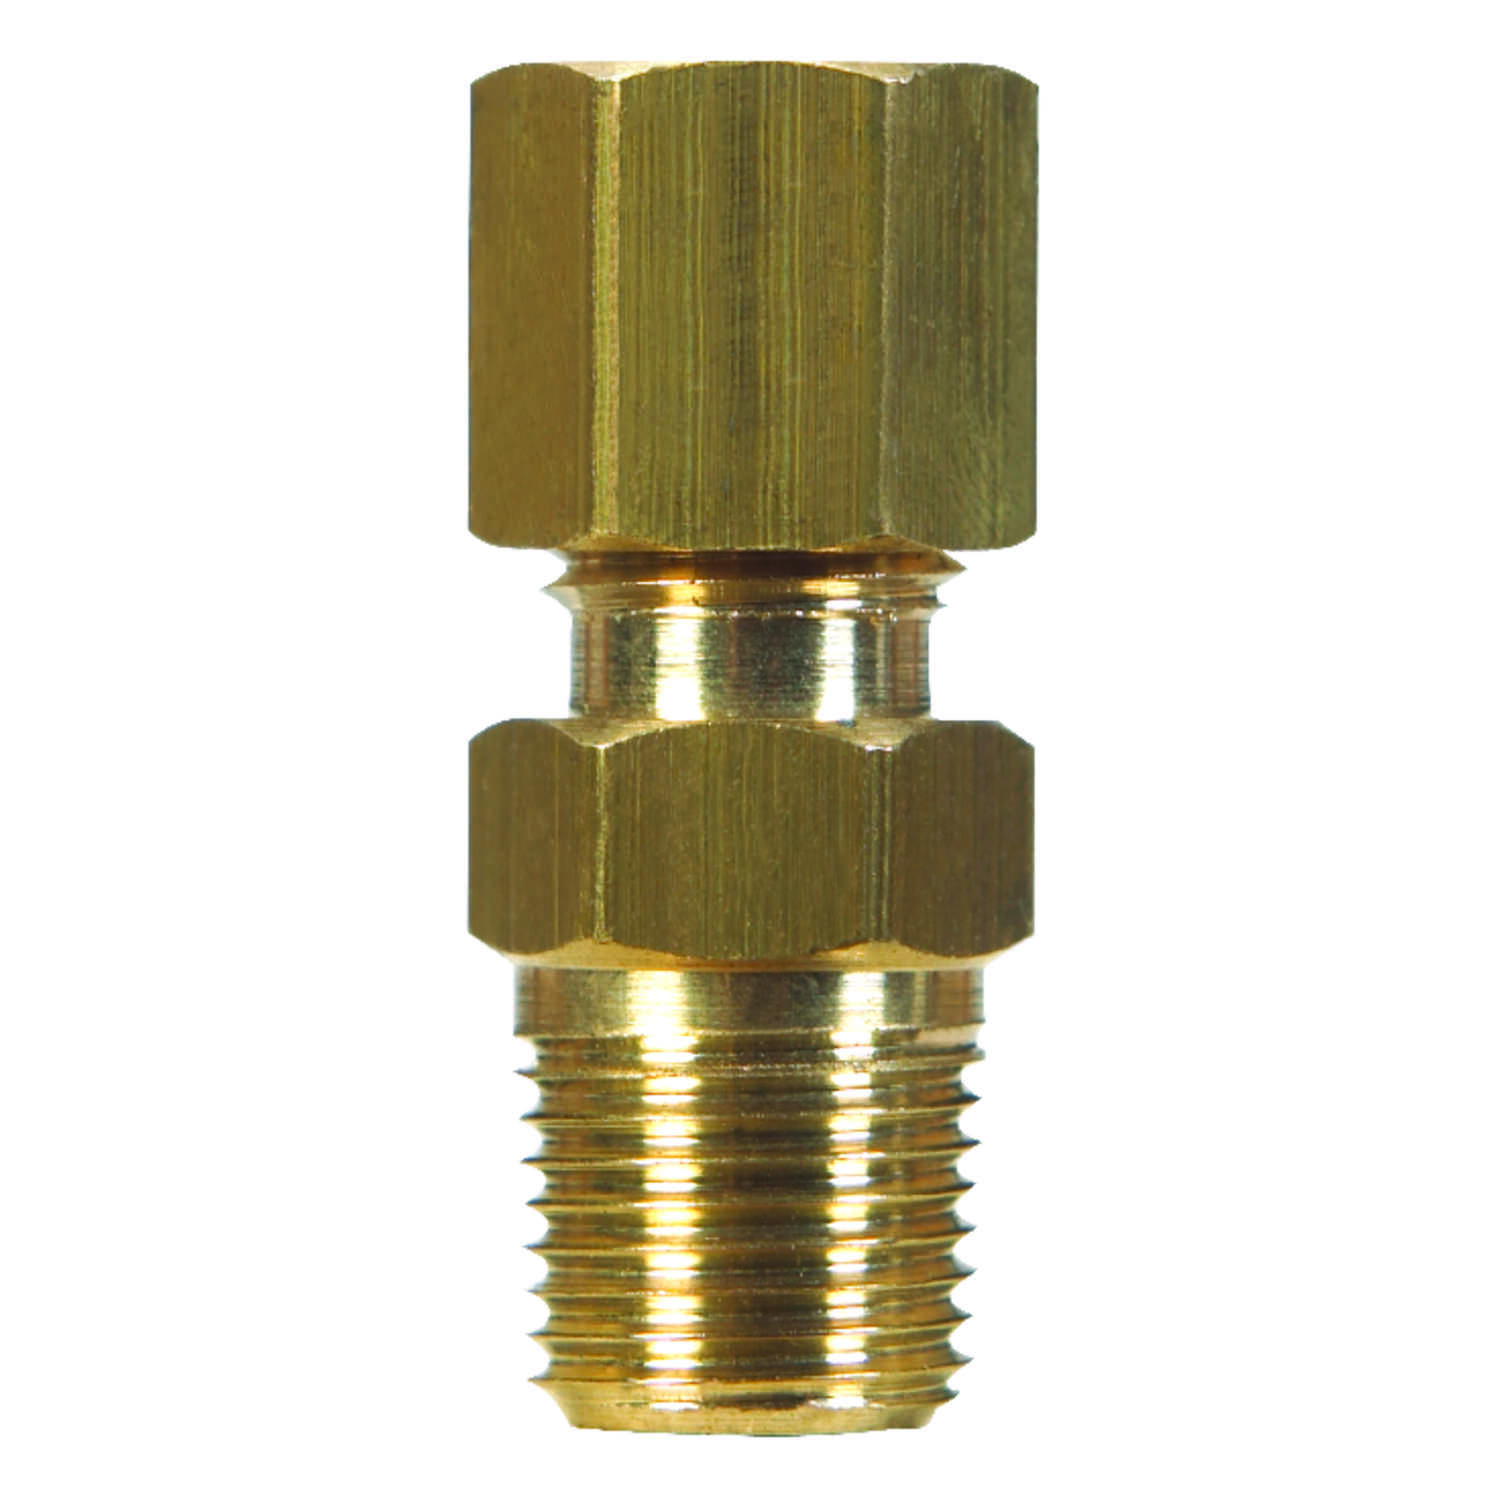 JMF  1/4 in. Dia. x 1/8 in. Dia. Brass  Compression Fitting